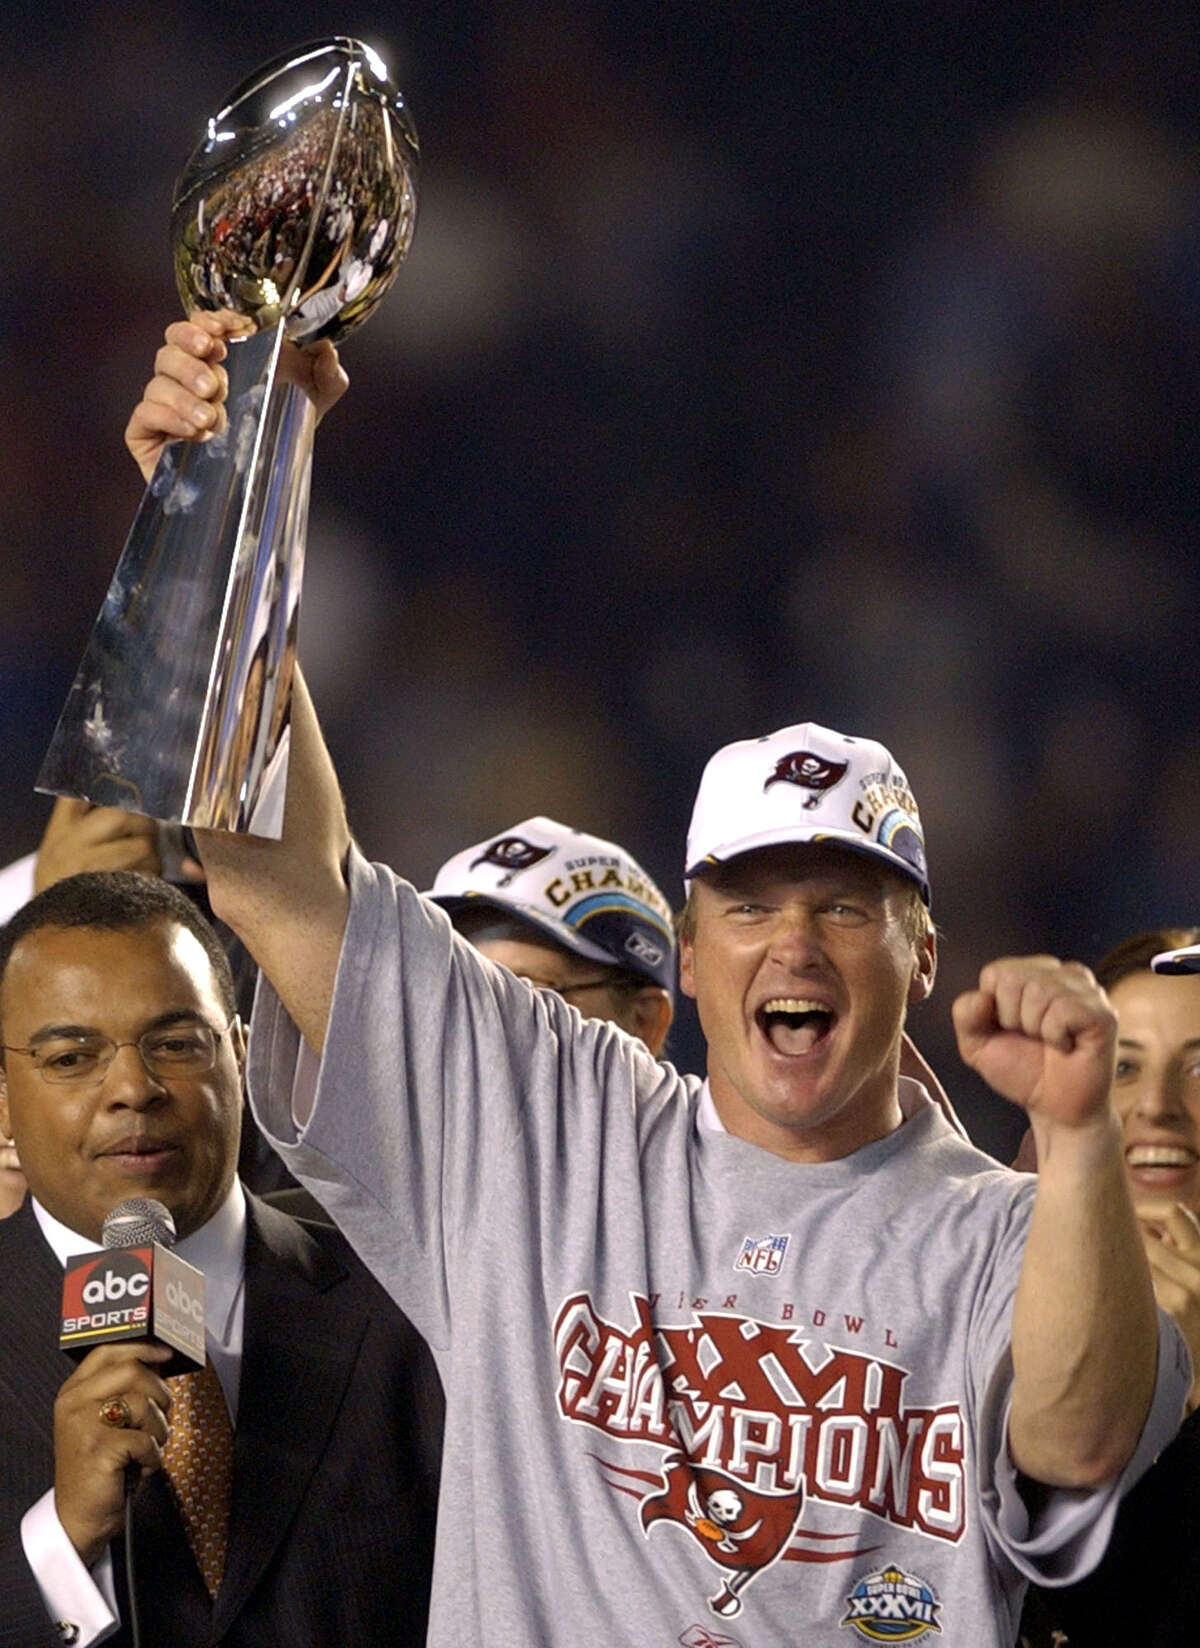 39. Chucky sticks it Raiders: After leaving Oakland for Tampa Bay the previous year, Jon Gruden got his revenge with an impressive win a 48-21 triumph over the Raiders in Super Bowl XXXVII. The Buccaneers defense intercepted Oakland quarterback Rich Gannon five times, with three of them returned for touchdowns.